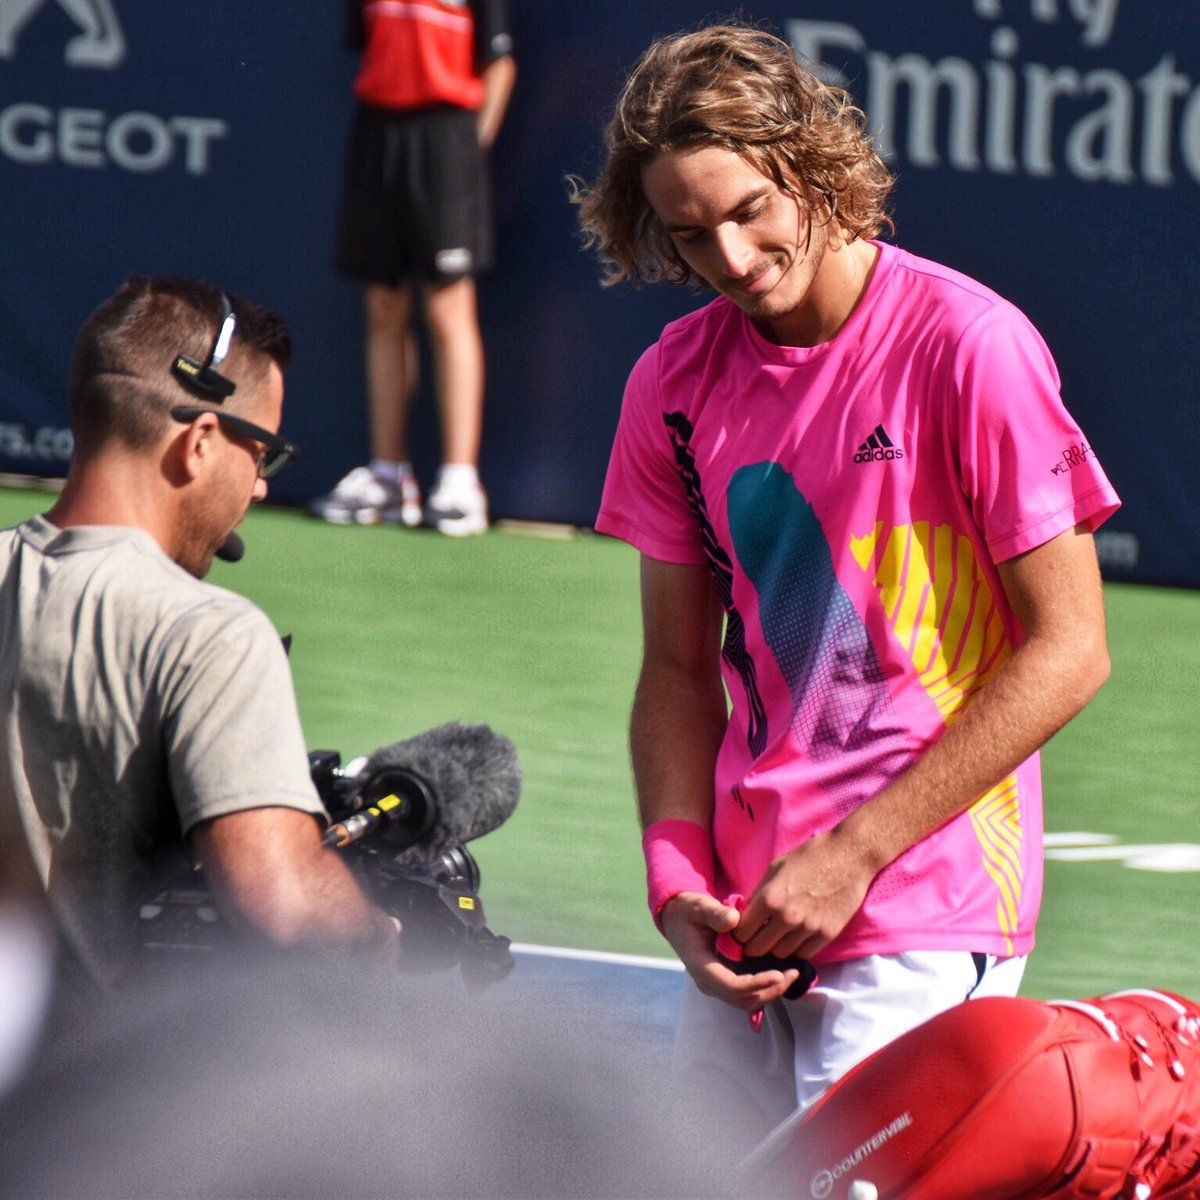 Maria Sakkari Nothing Is Going On With Me And Stefanos Tsitsipas In 2020 Tennis Stars Tennis Maria